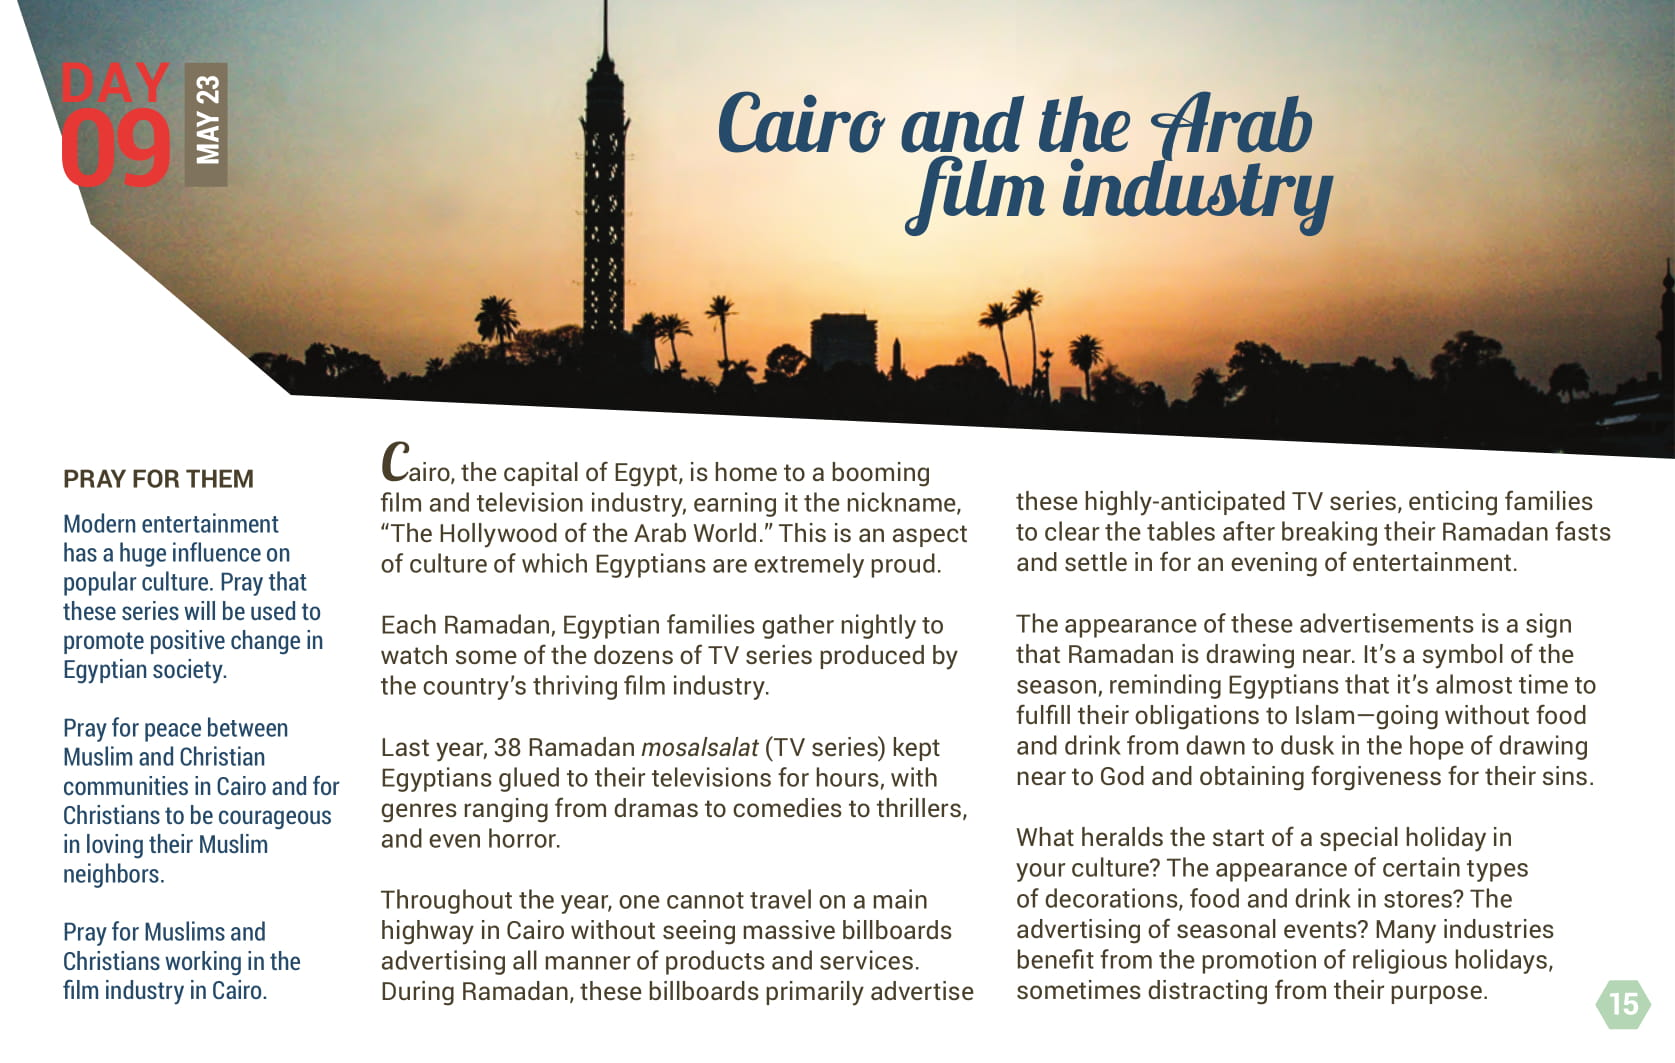 Day 09 - Cairo and the Arab film industry